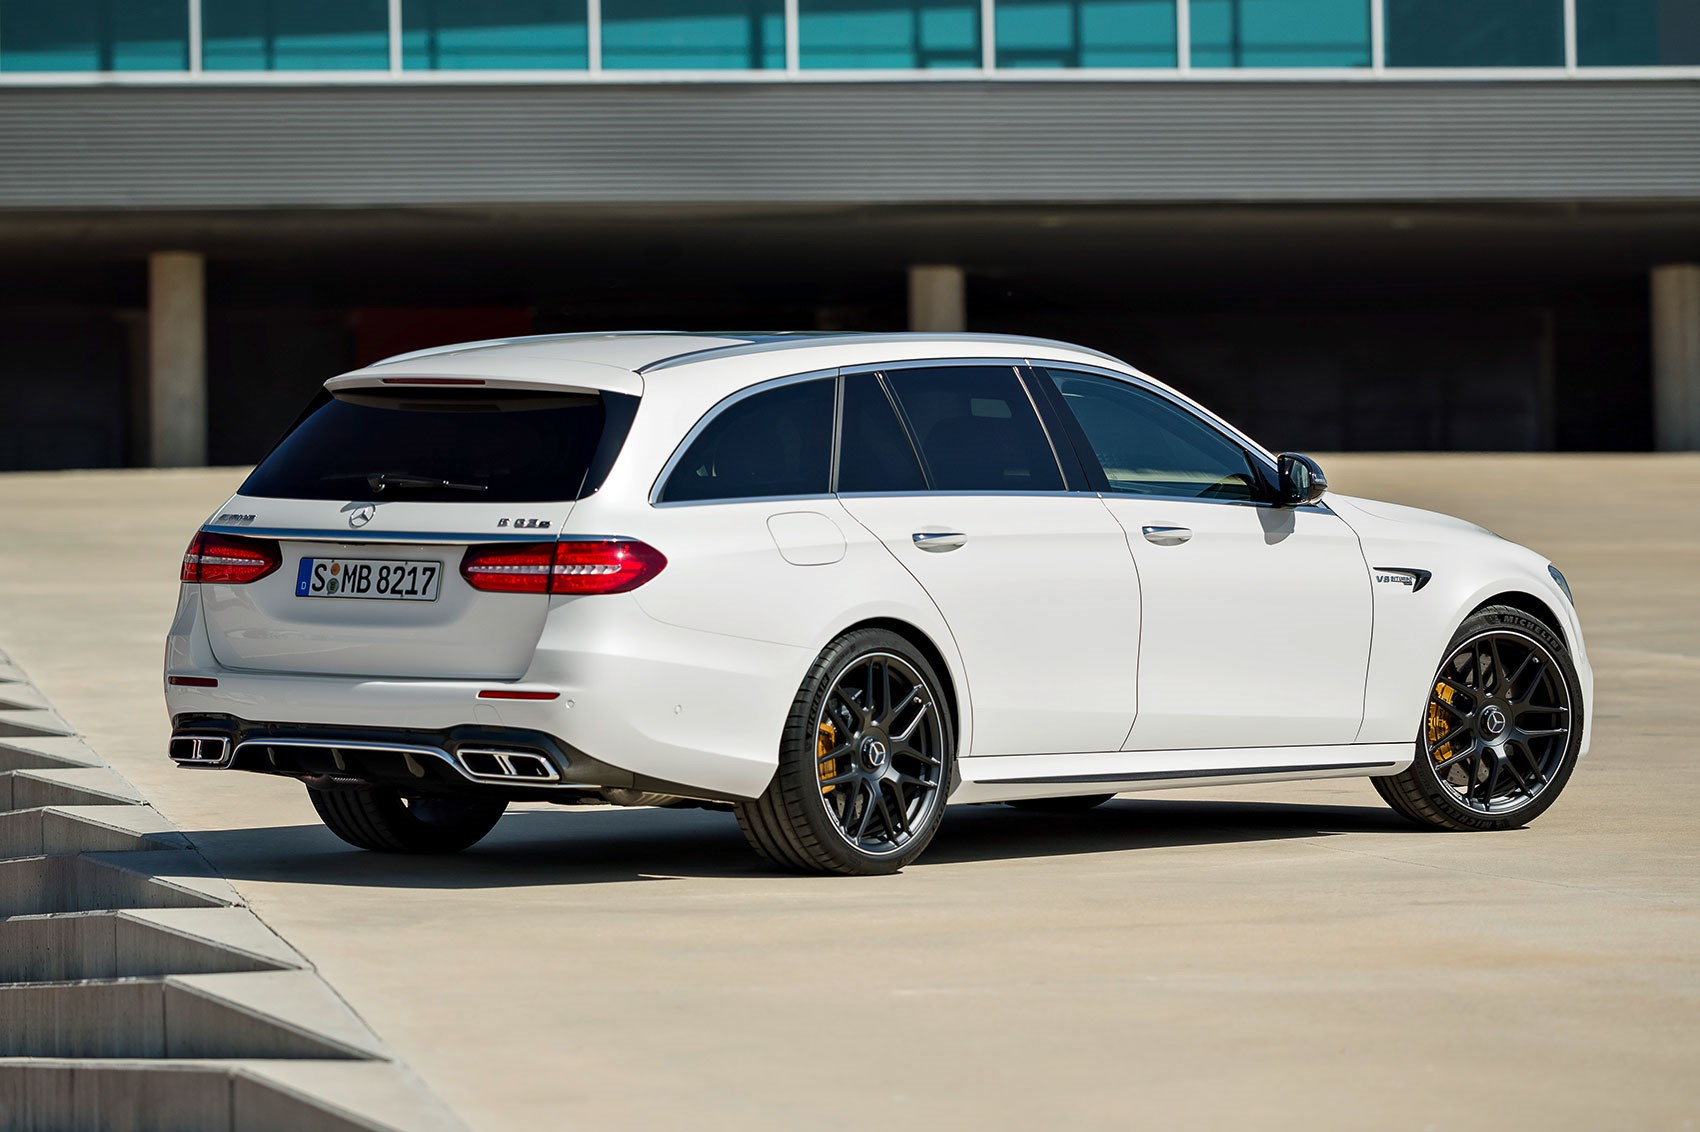 Mercedes amg e63 4matic estate prices revealed for 2017 for Mercedes benz e63 s amg